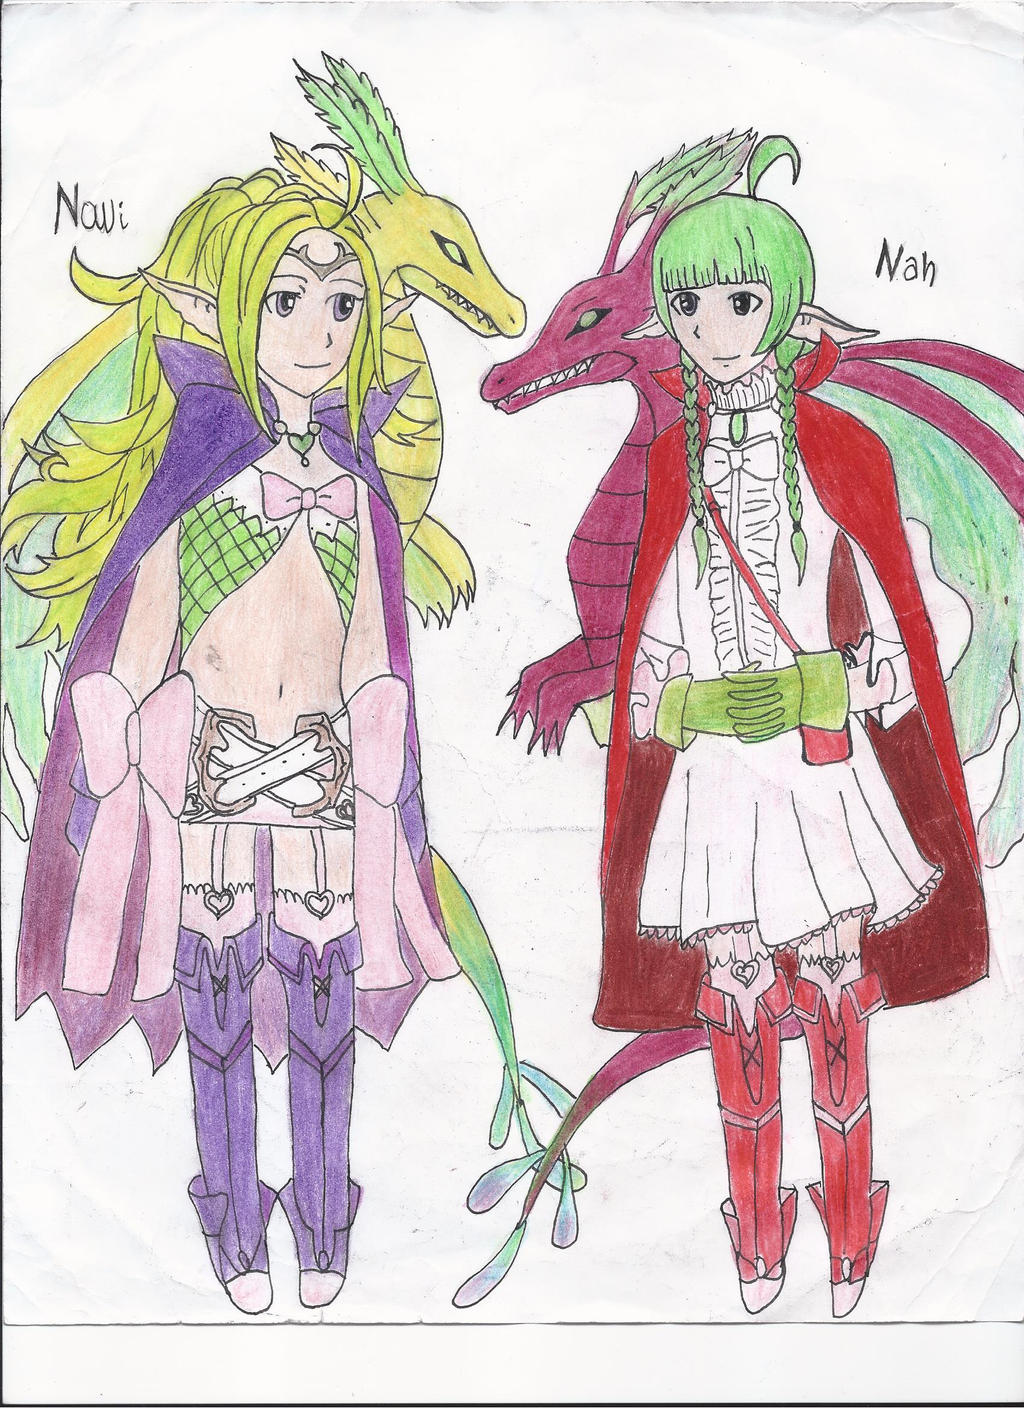 Nowi and Nah by eilujenna on DeviantArt